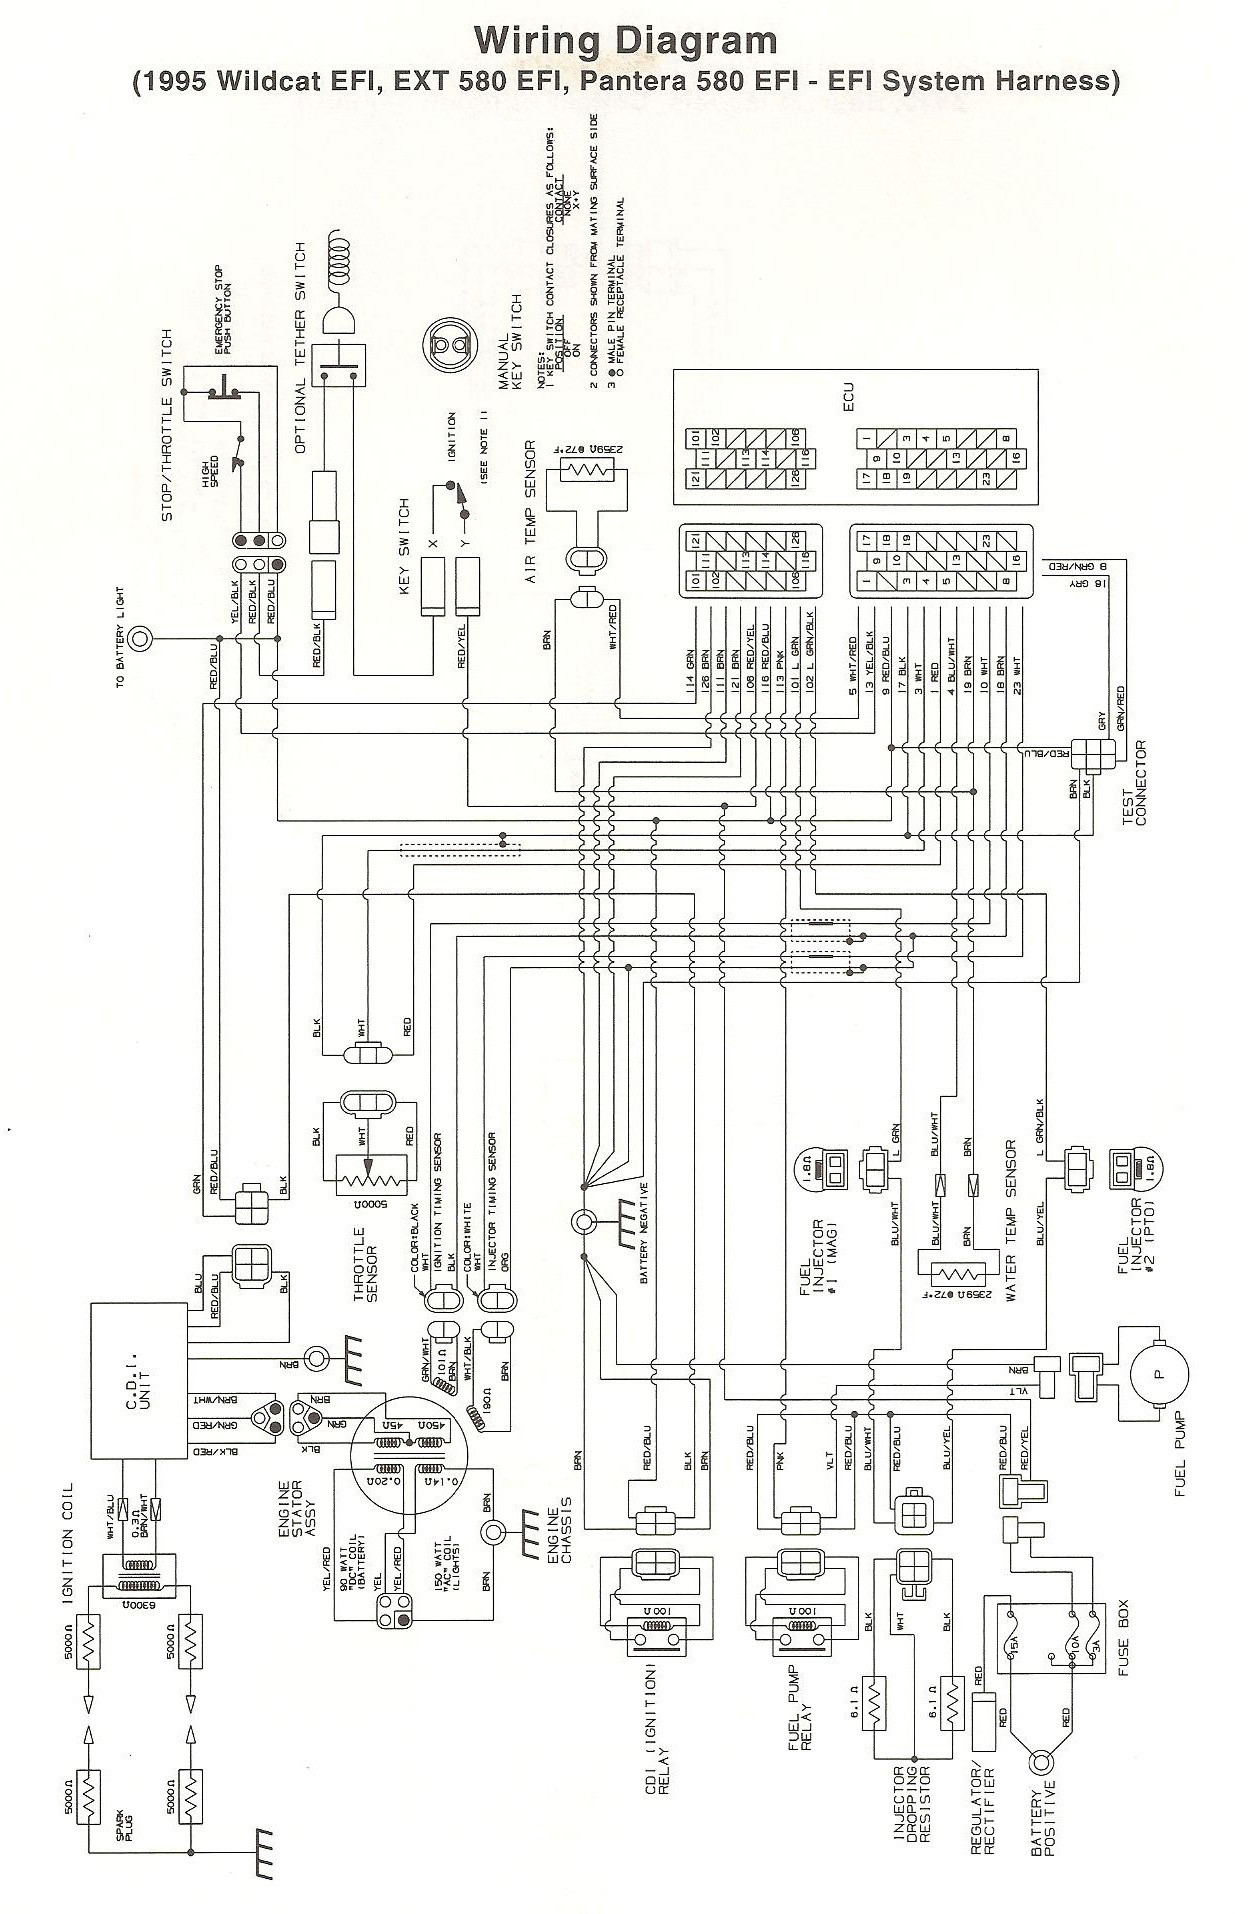 Yamaha Cdi Box Wiring - Wiring Diagram Schematics on